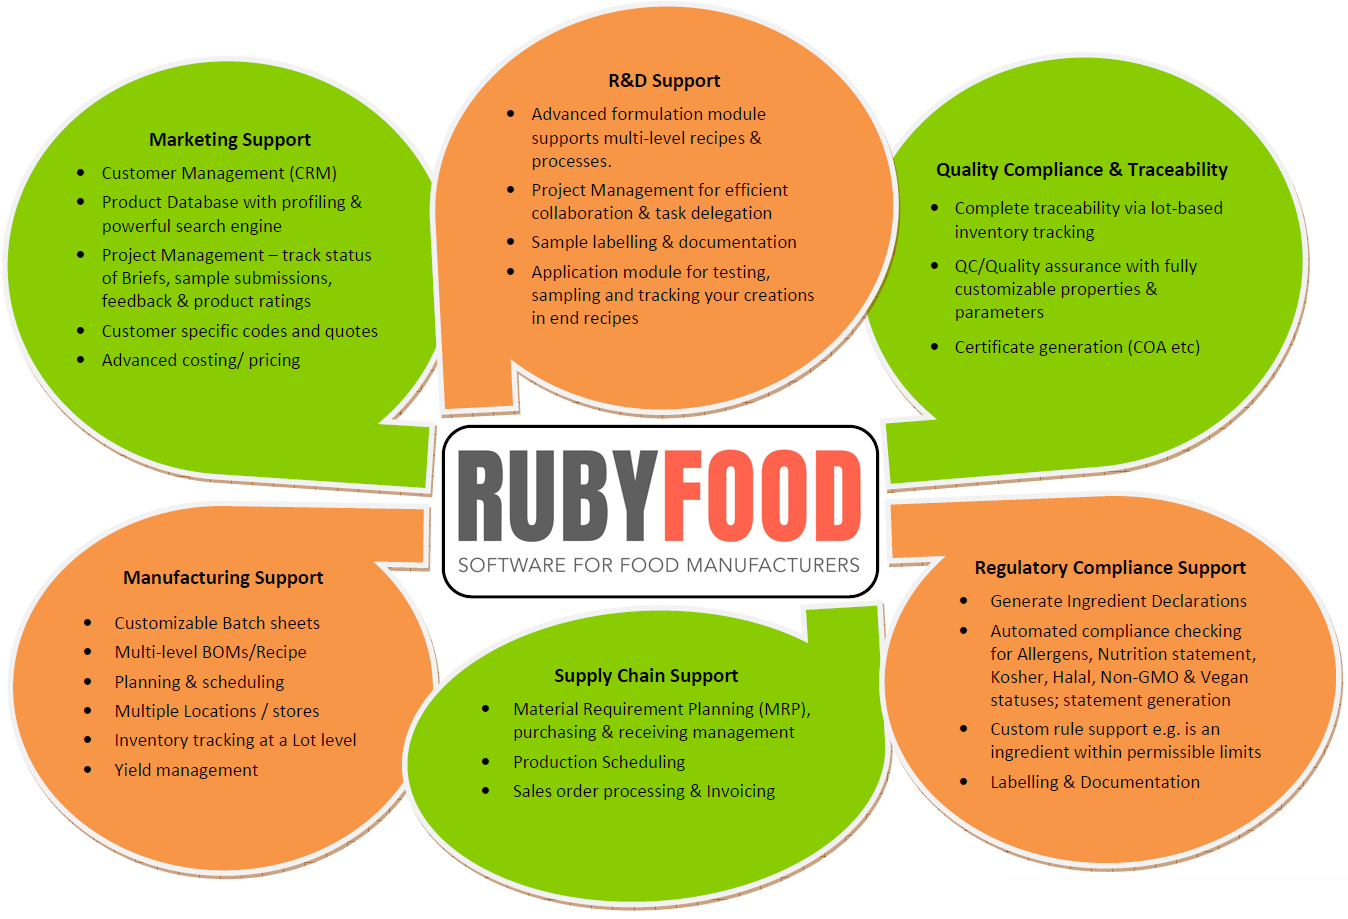 Ruby food the food erp software and nutrition food software food ruby food the food erp software and nutrition food software food erp food mrp food manufacturing software nutrition calculator ghp software food forumfinder Gallery